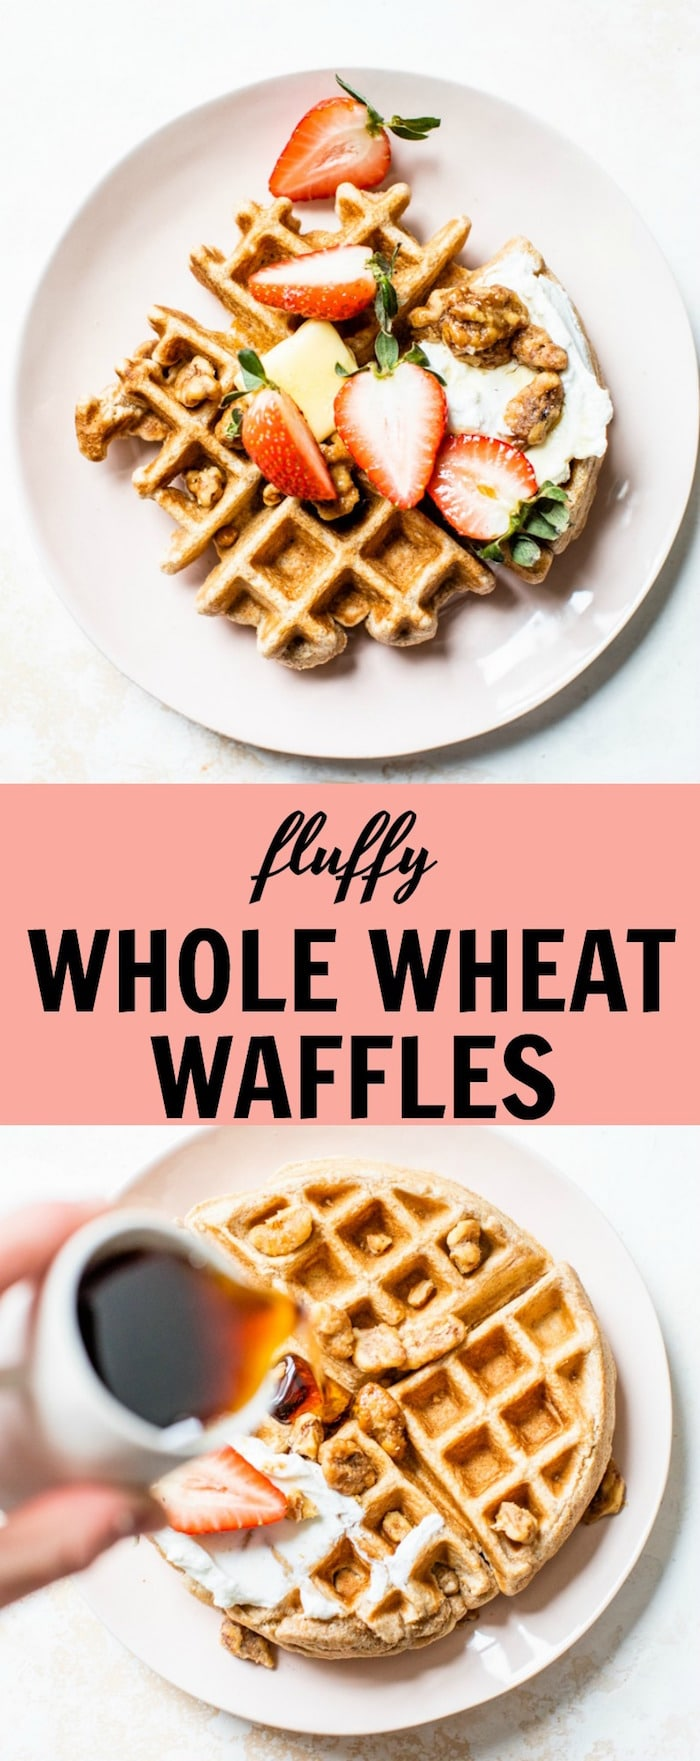 Fluffy Whole Wheat Waffle recipe made with whole wheat flour, coconut oil and maple syrup for a healthier breakfast waffle | thealmondeater.com